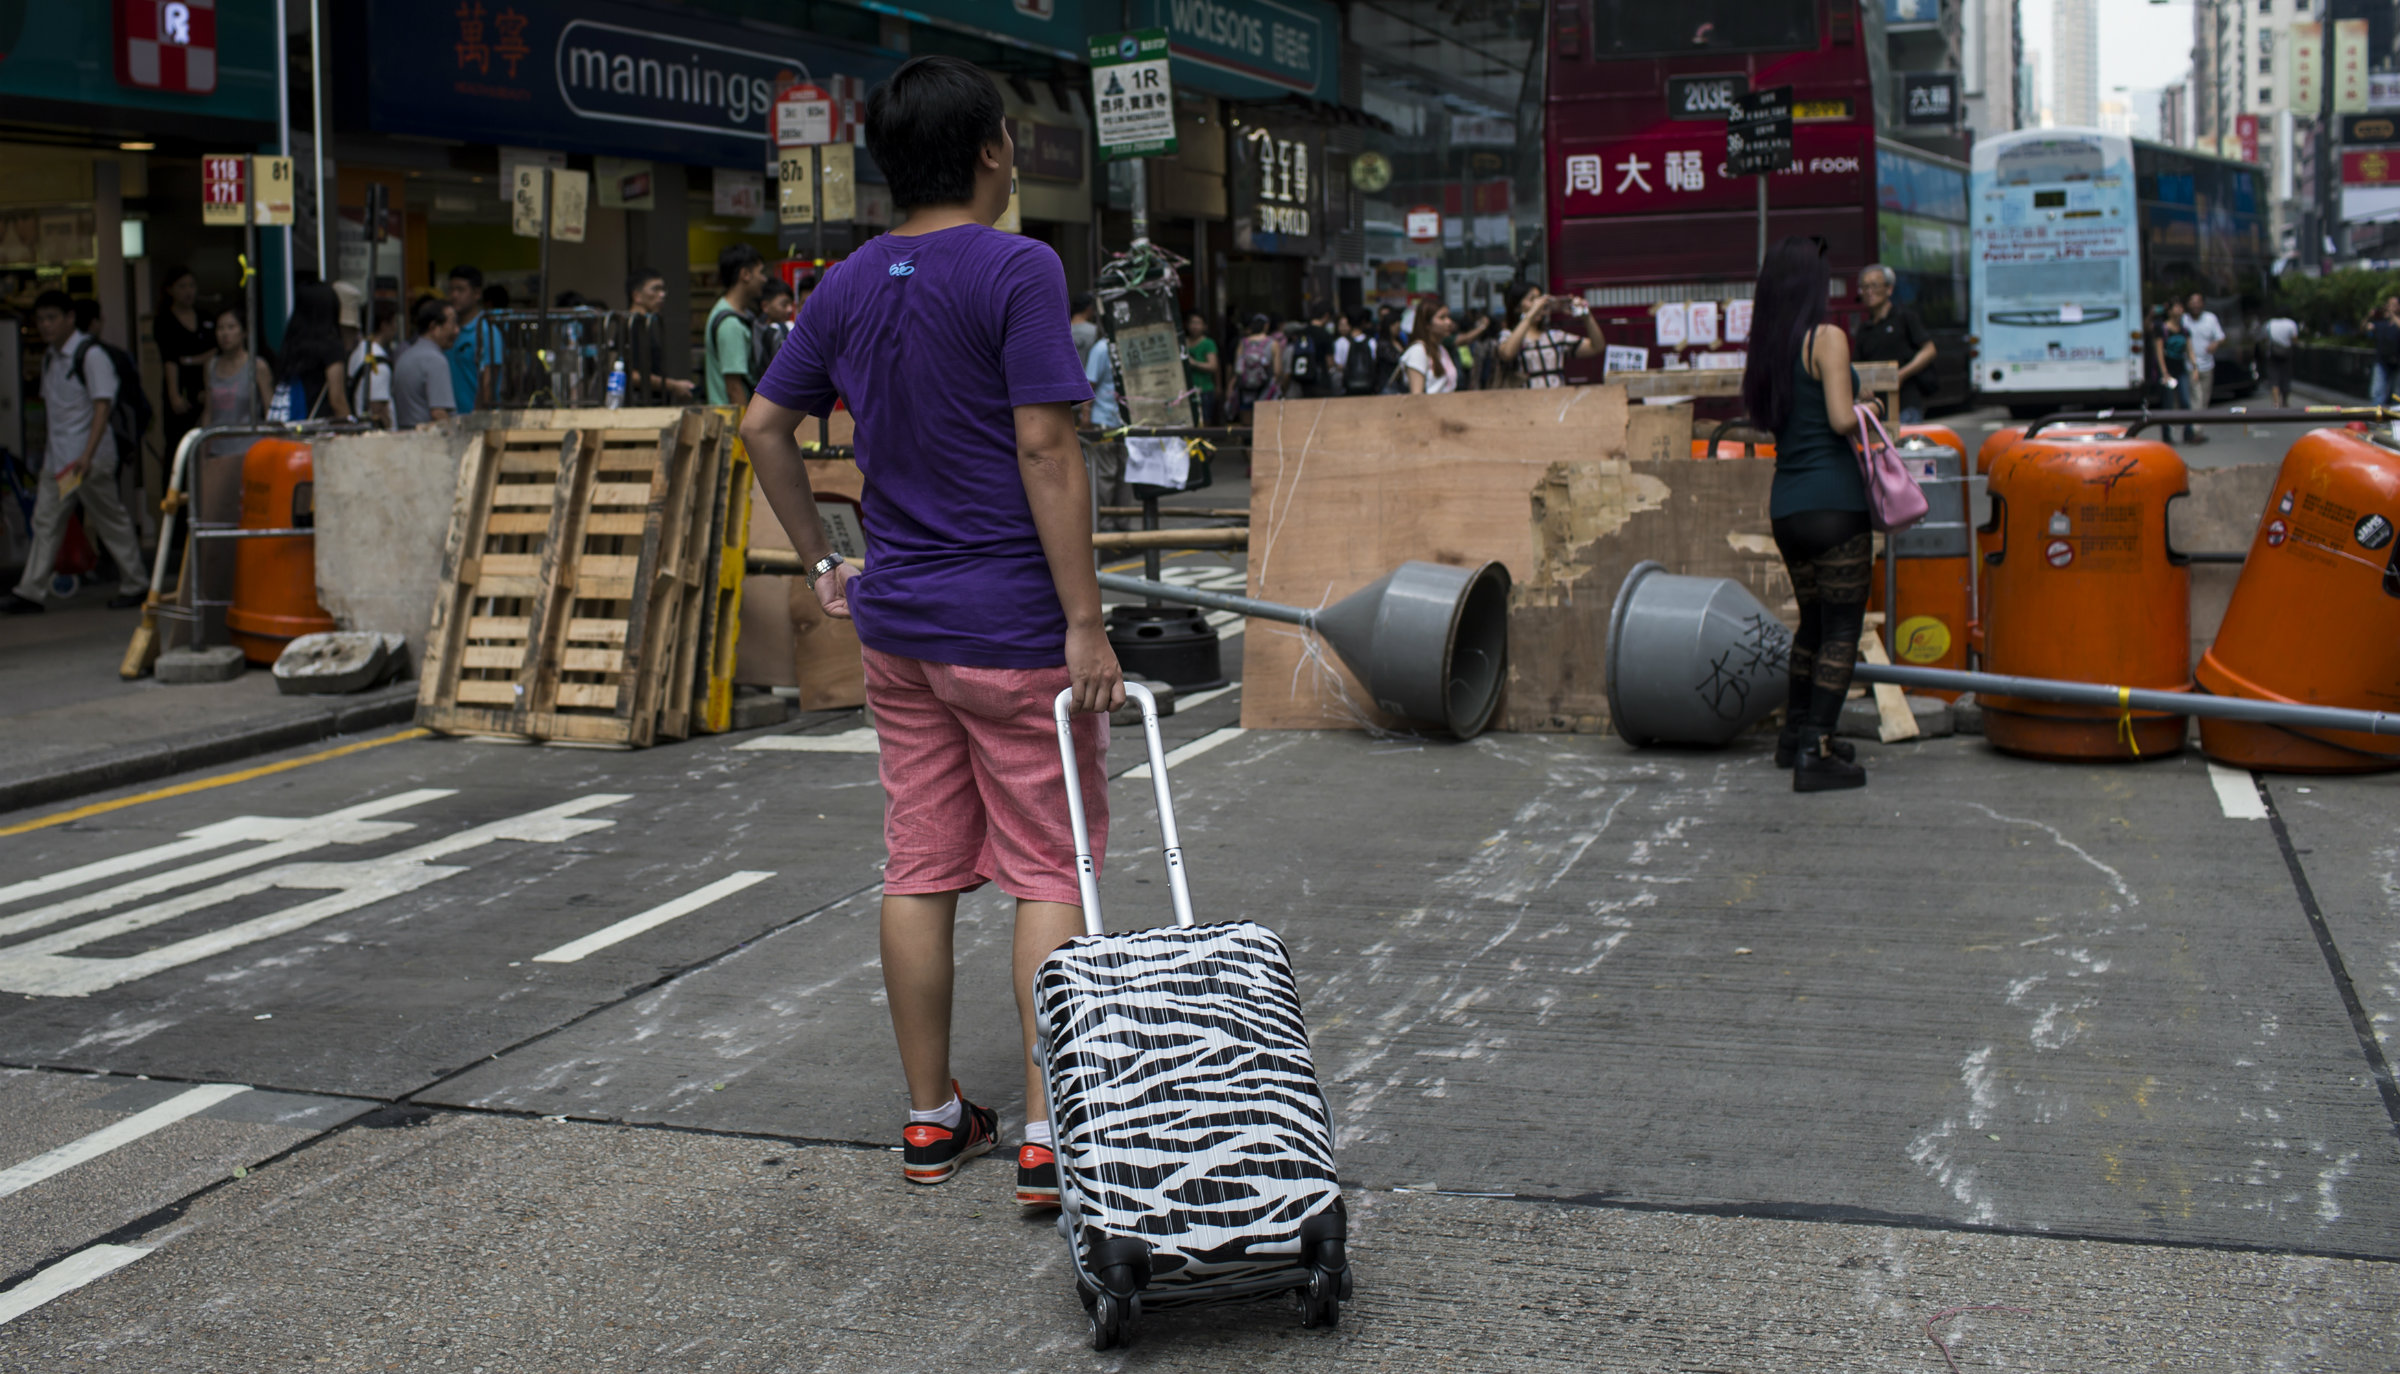 A tourist with a rolling suitcase stands in front of protest barricades in Hong Kong.